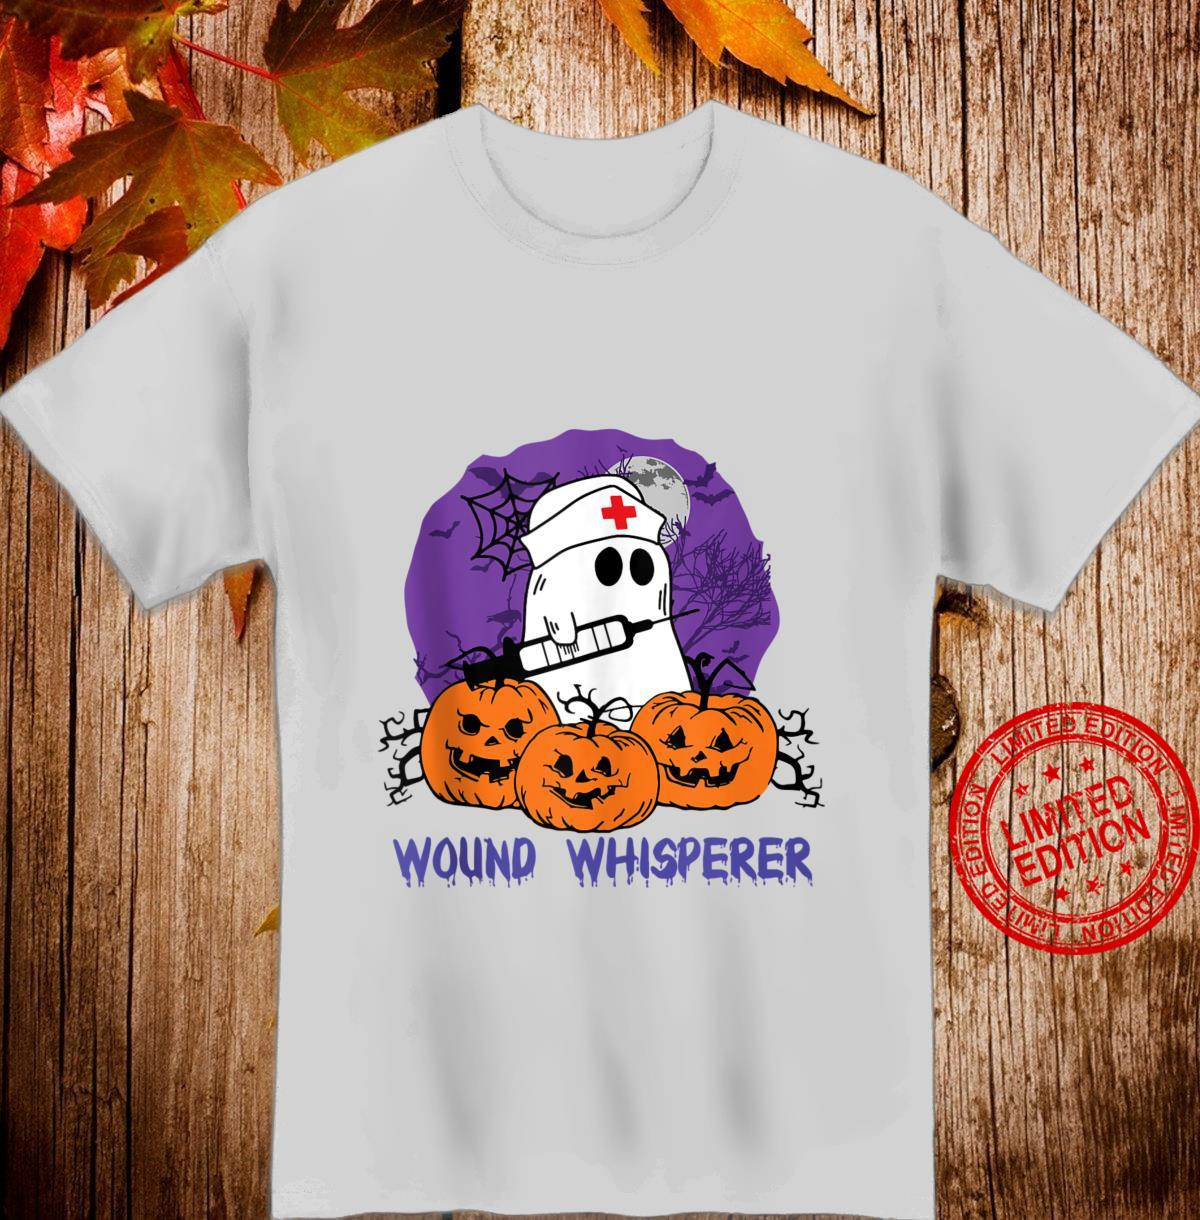 Wound Whisperer Nurse Ghost Halloween Costume Shirt